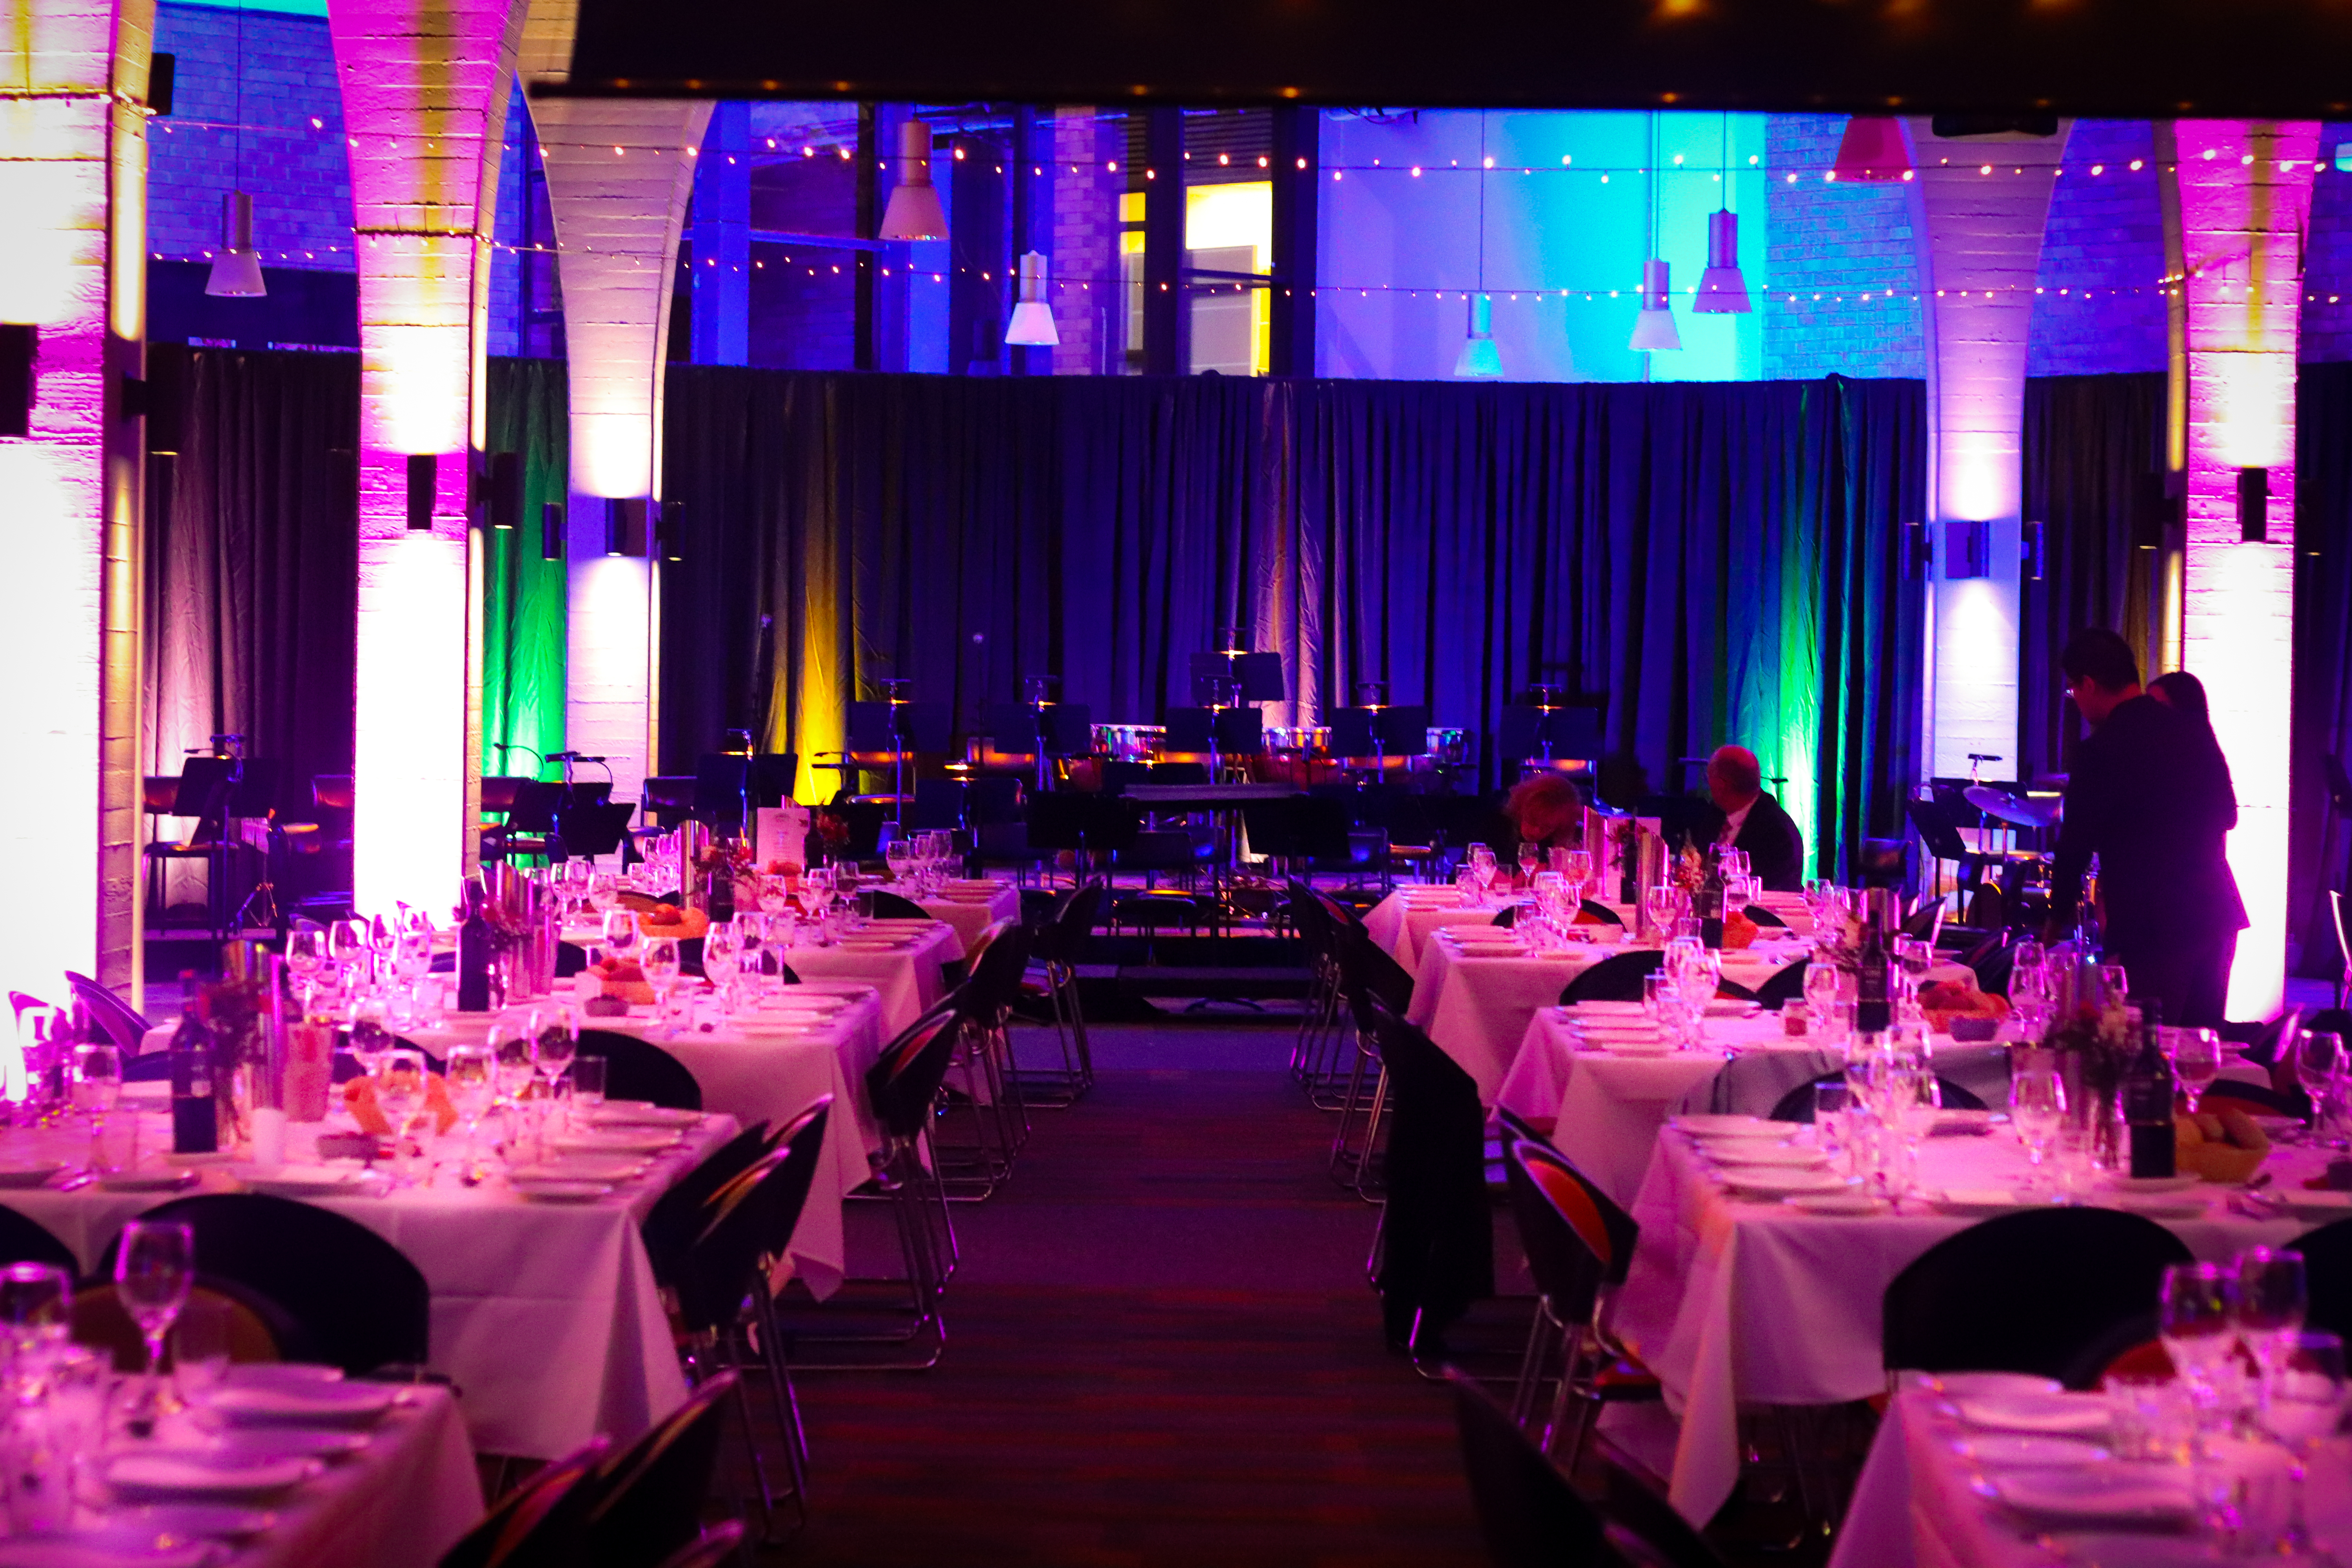 Photo of tables set up in Toowoomba venue, with stage in background